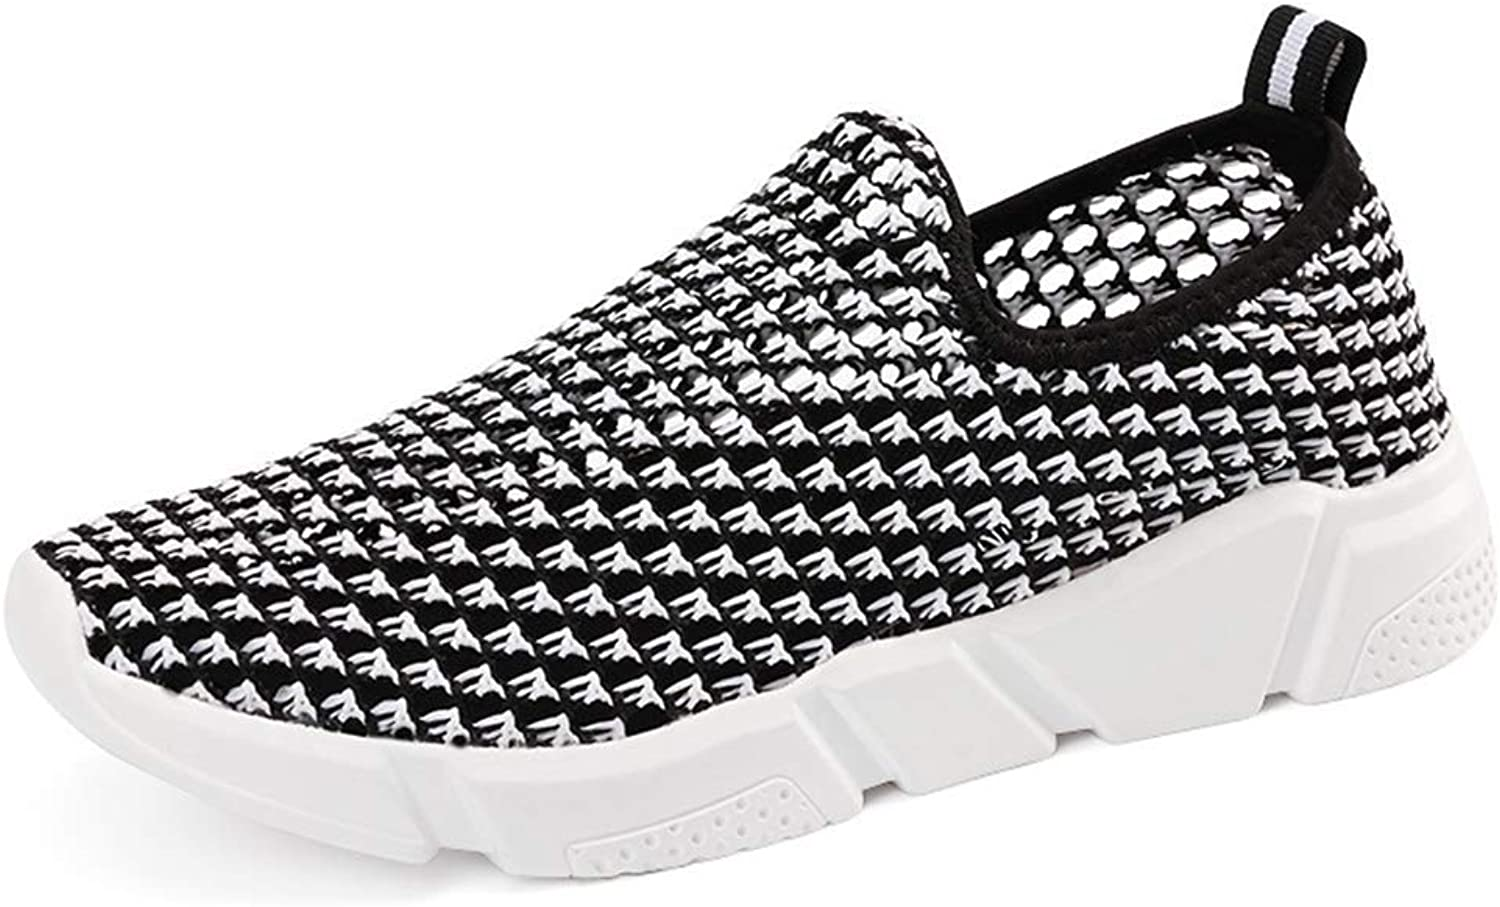 Fashion shoesbox Women Slip-On Sneakers Comfort Breathable Mesh Slip On Wedges shoes Moccasin Loafers Walking shoes for Women